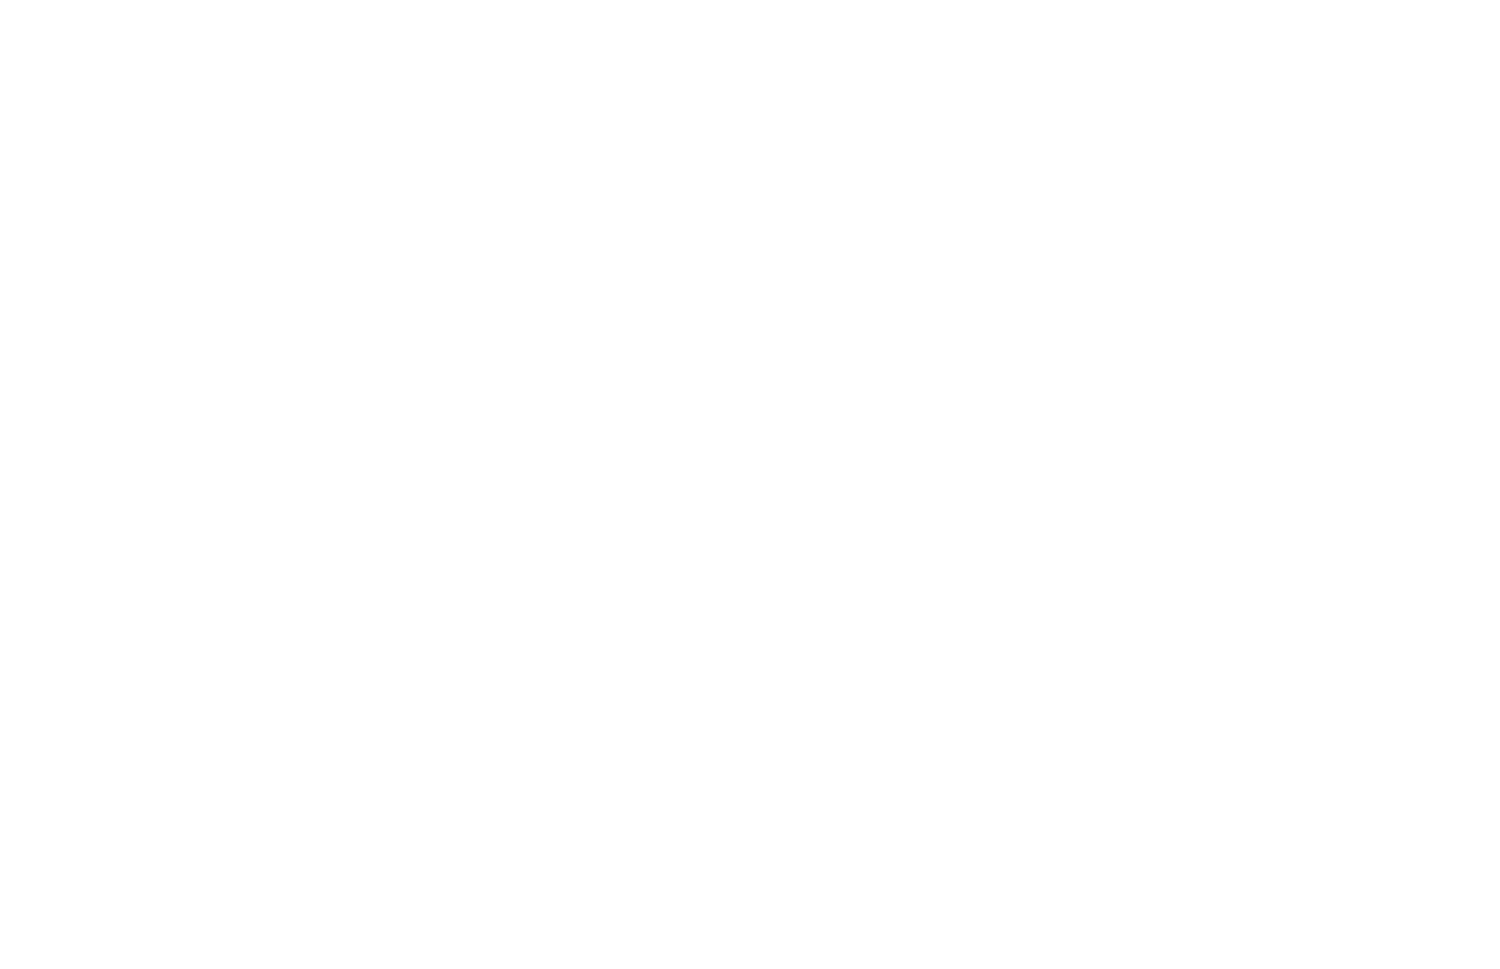 Southern New Mexico Family Residency Program